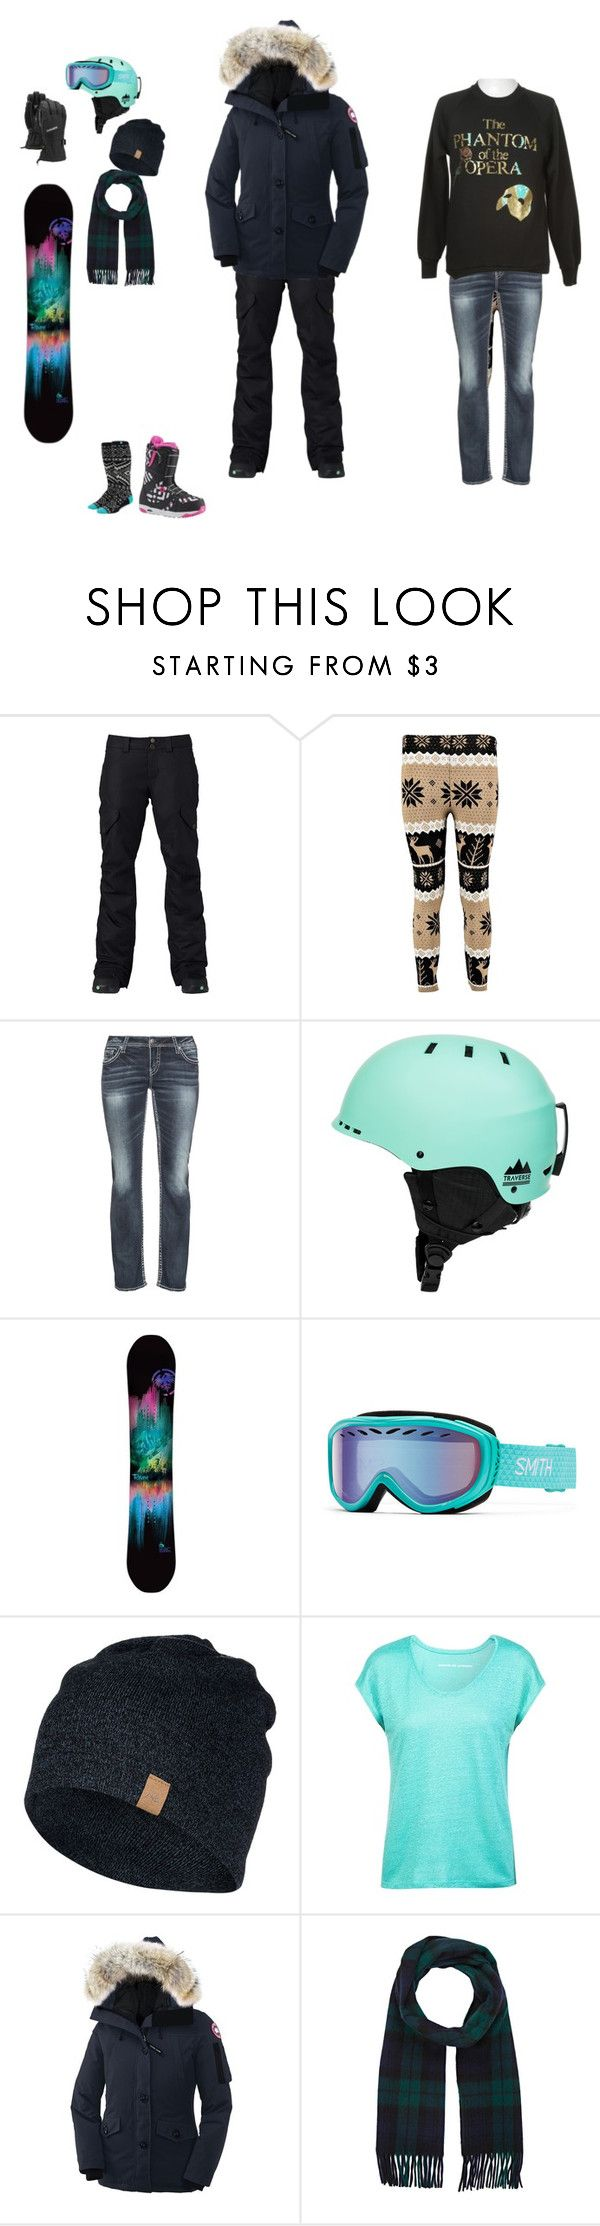 """Untitled #339"" by rebecca-568 ❤ liked on Polyvore featuring Burton, Silver Jeans Co., Quiksilver, Comptoir Des Cotonniers, Canada Goose and Drakes London"